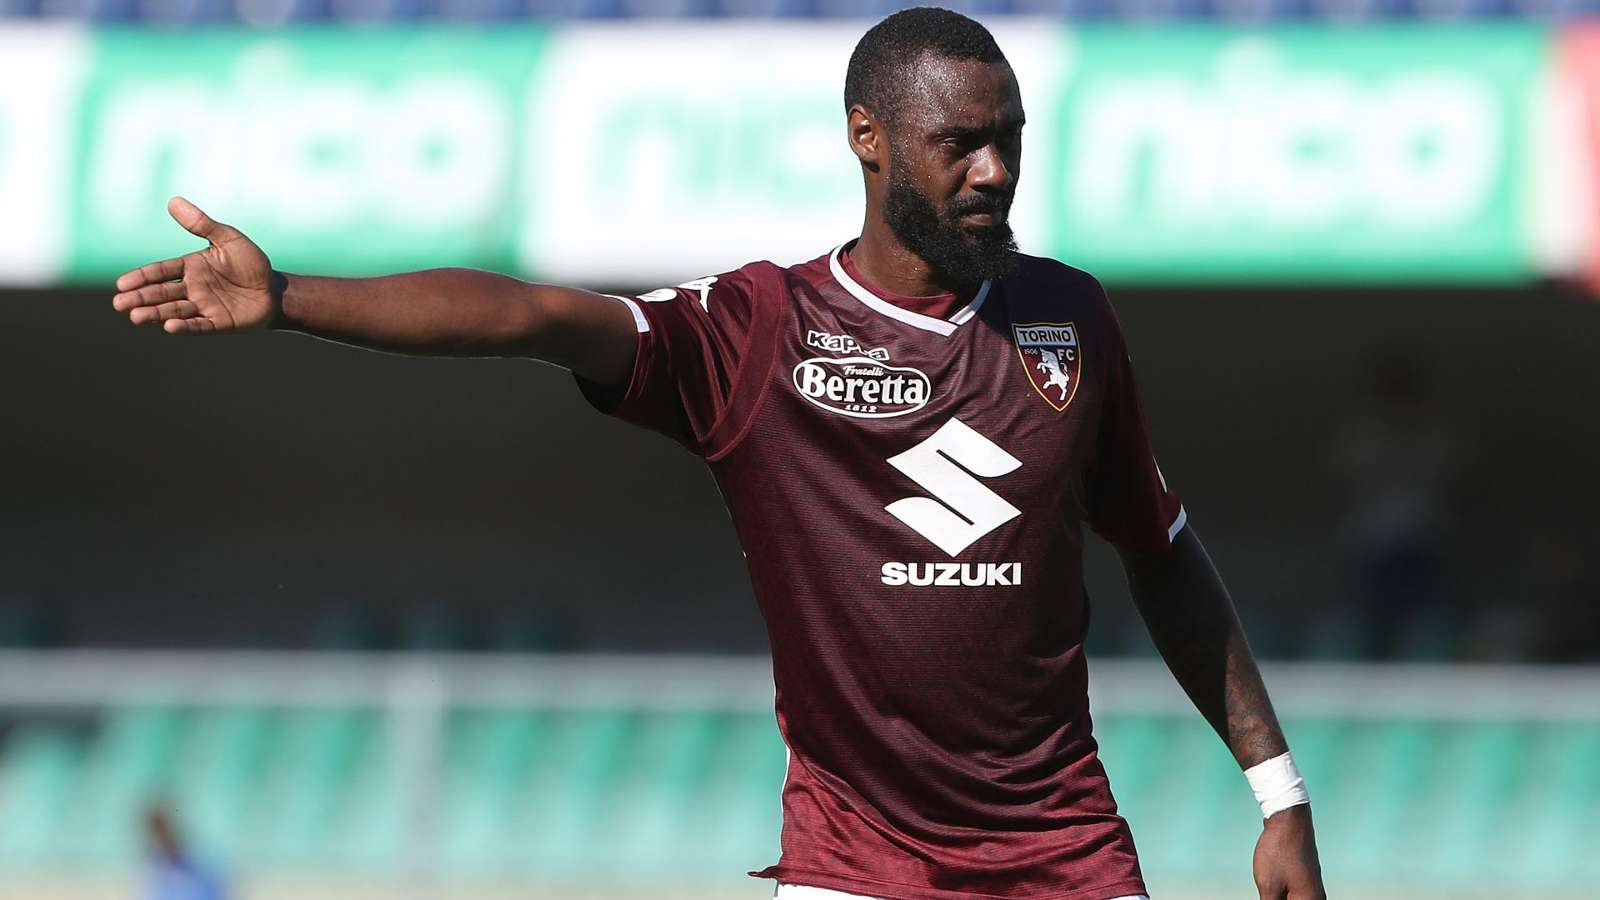 Italy: Torino president furious as Cameroon defender N'Koulou tries to force Roma move